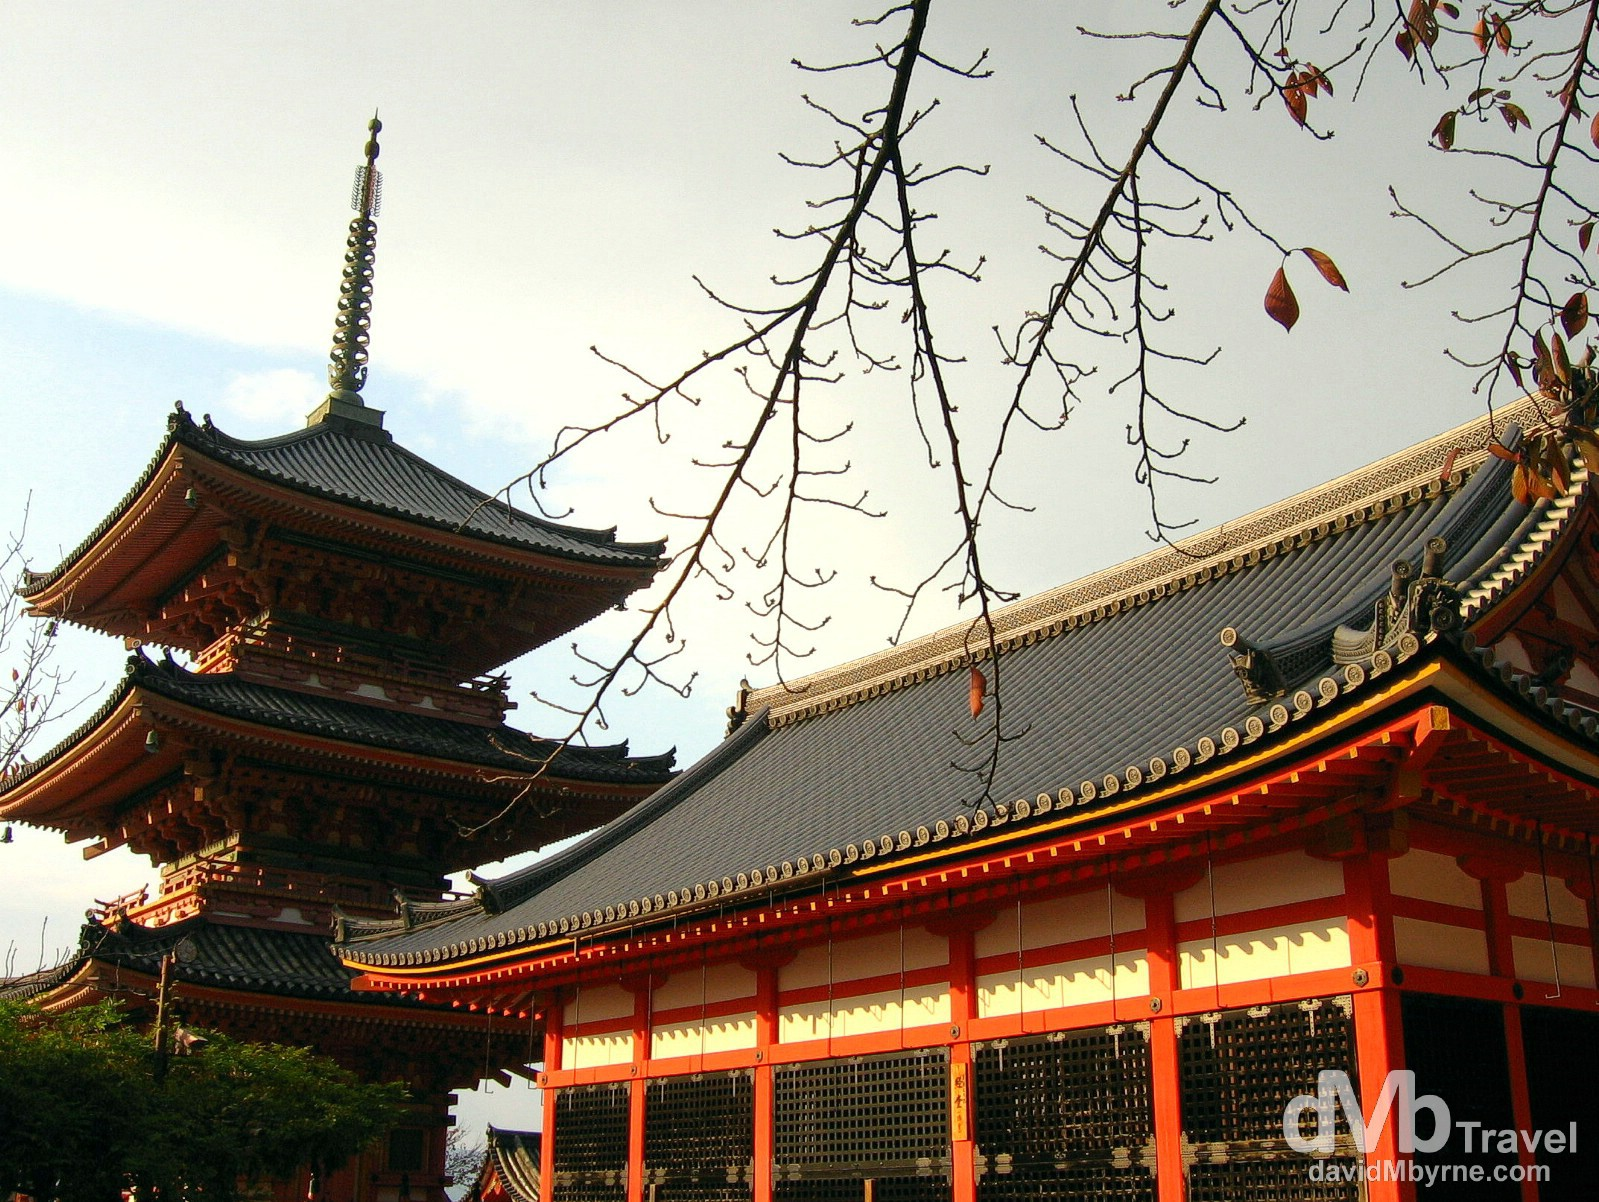 The three-storied pagoda (and another orange building) in the grounds of the Kiyomizu-dera temple. The temple originated in 778 and remains associated with the Hosso sect, one of the oldest sects within Japanese Buddhism. In 1994 the temple was added to the list of UNESCO world heritage sites, having being recognised as 'a place of exceptional and universal value; a cultural heritage site worthy of preservation for the benefit of all mankind'. Kiyomizu-dera Temple, Higashiyama-ku, Kyoto, Japan. November 20th 2007.